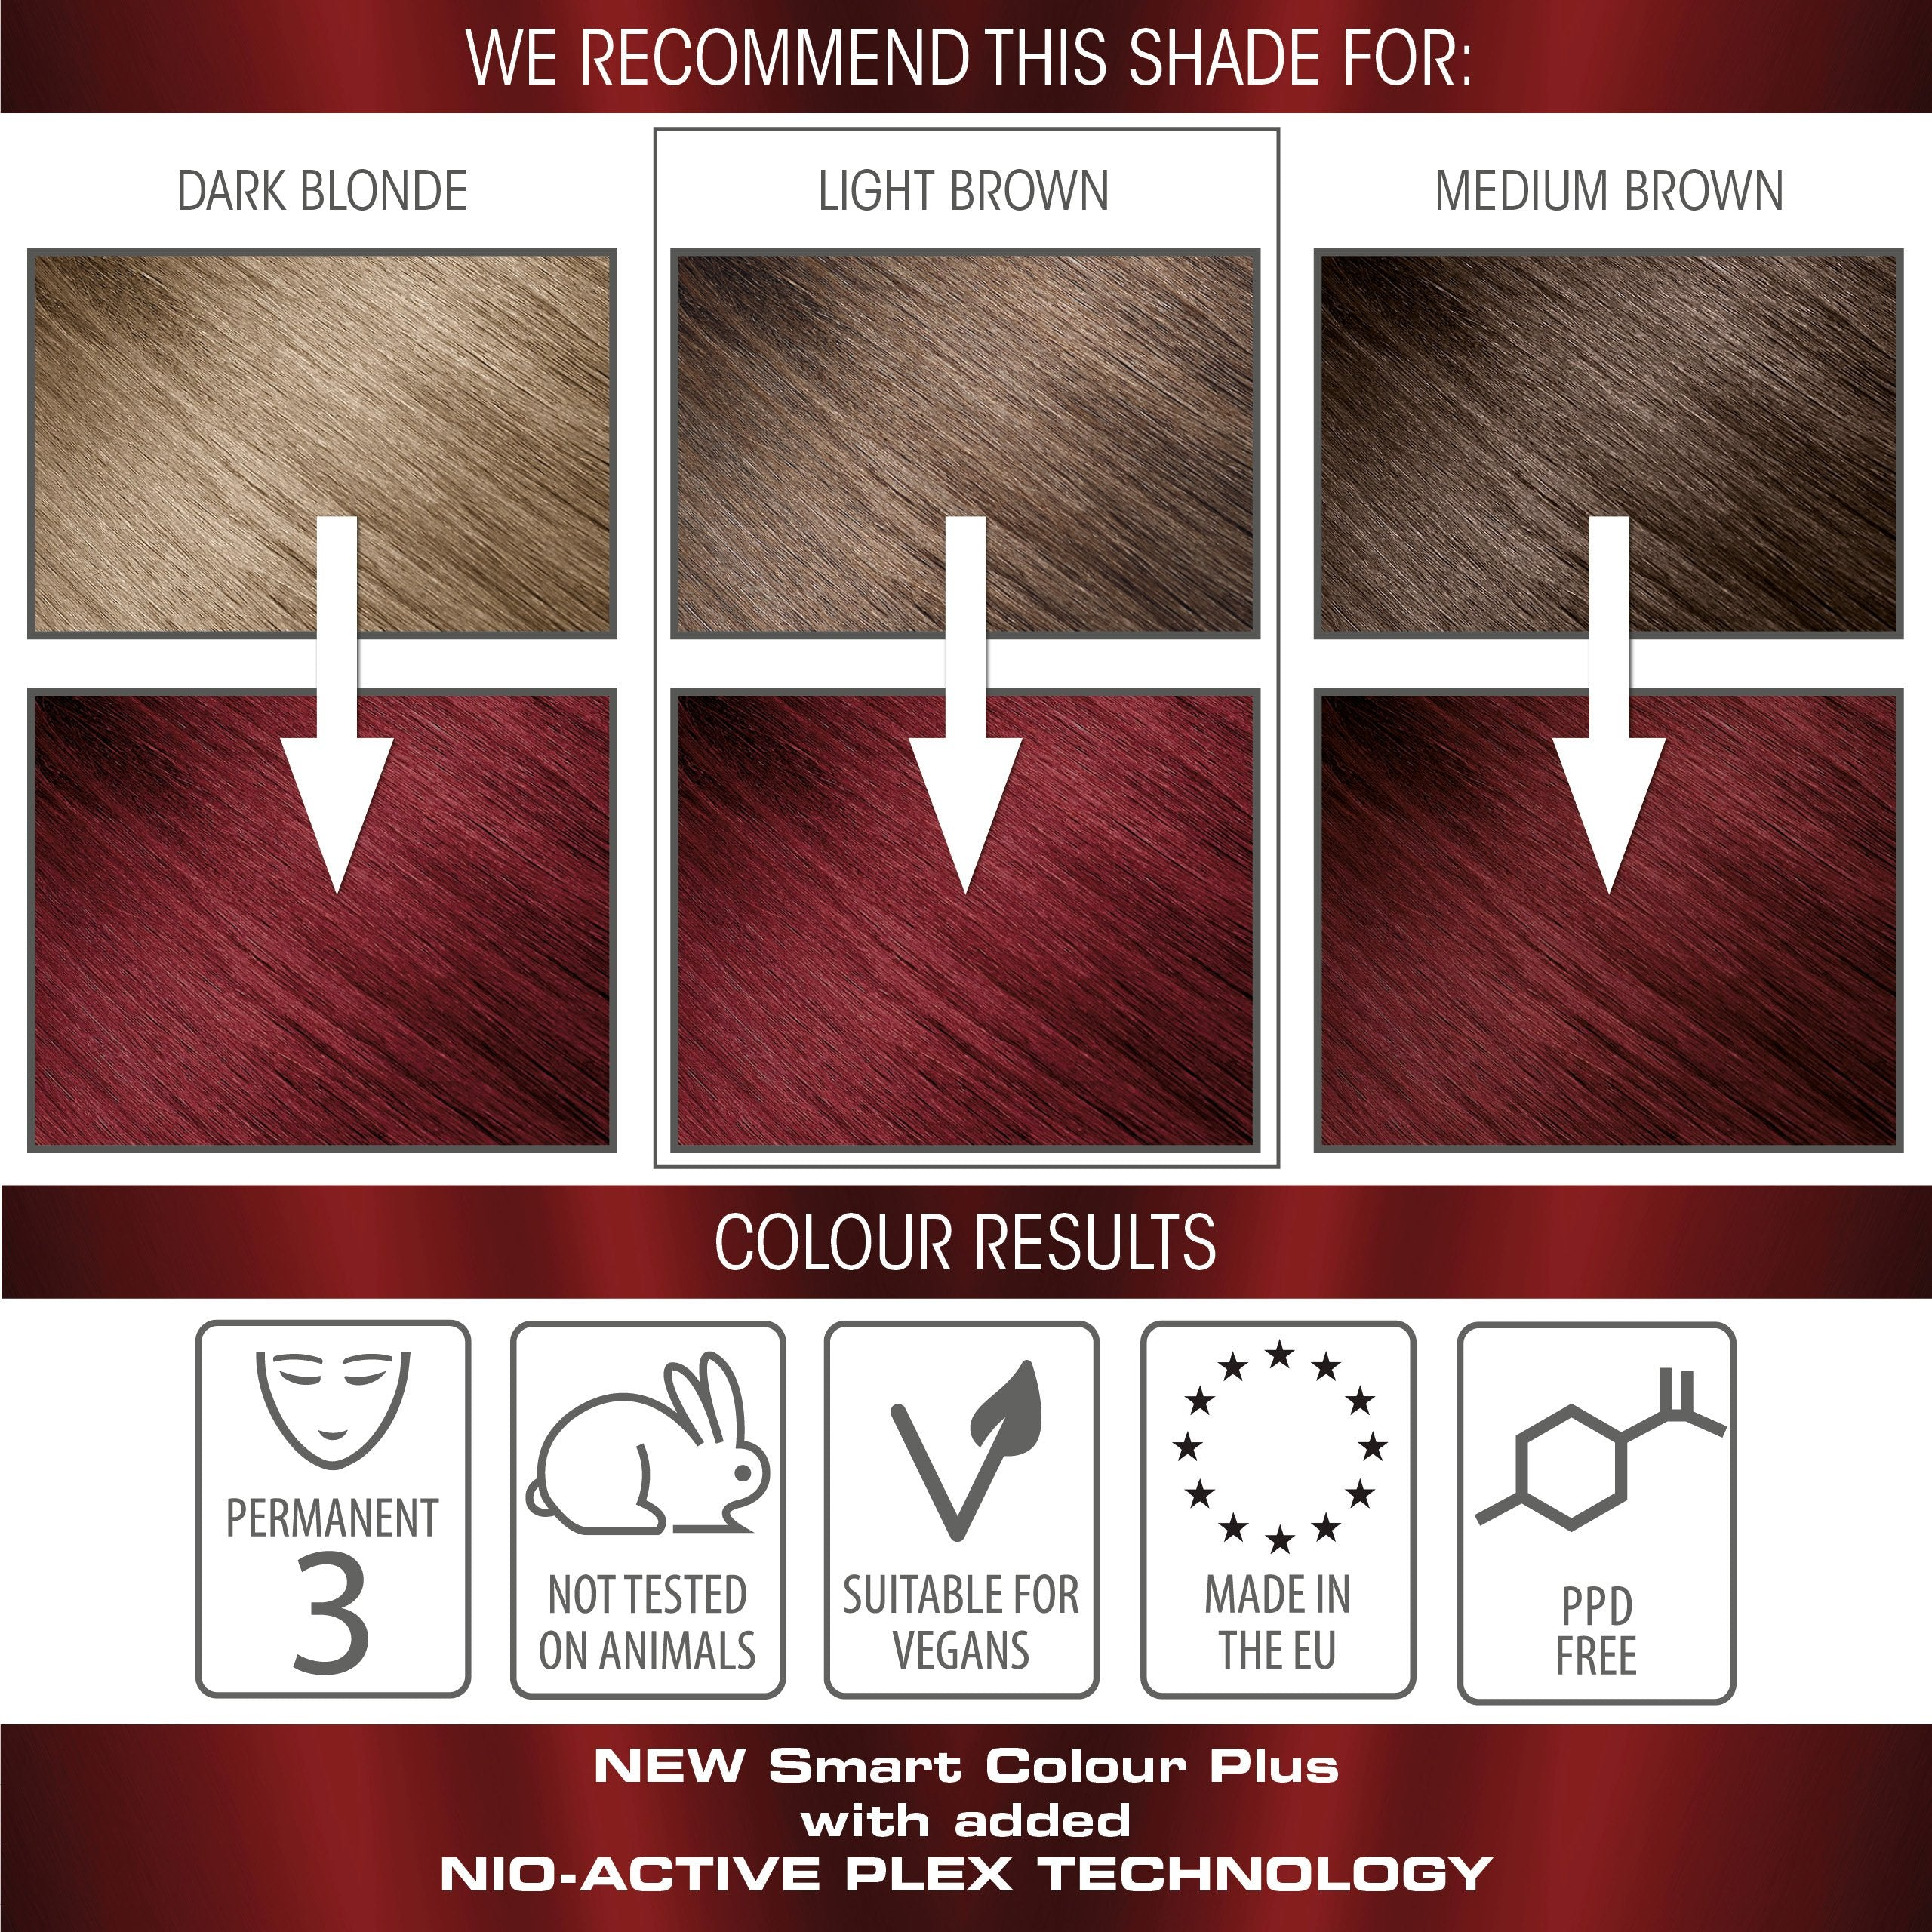 vegan cruelty free nio-plex conditioning permanent hair colour swatches red velvet